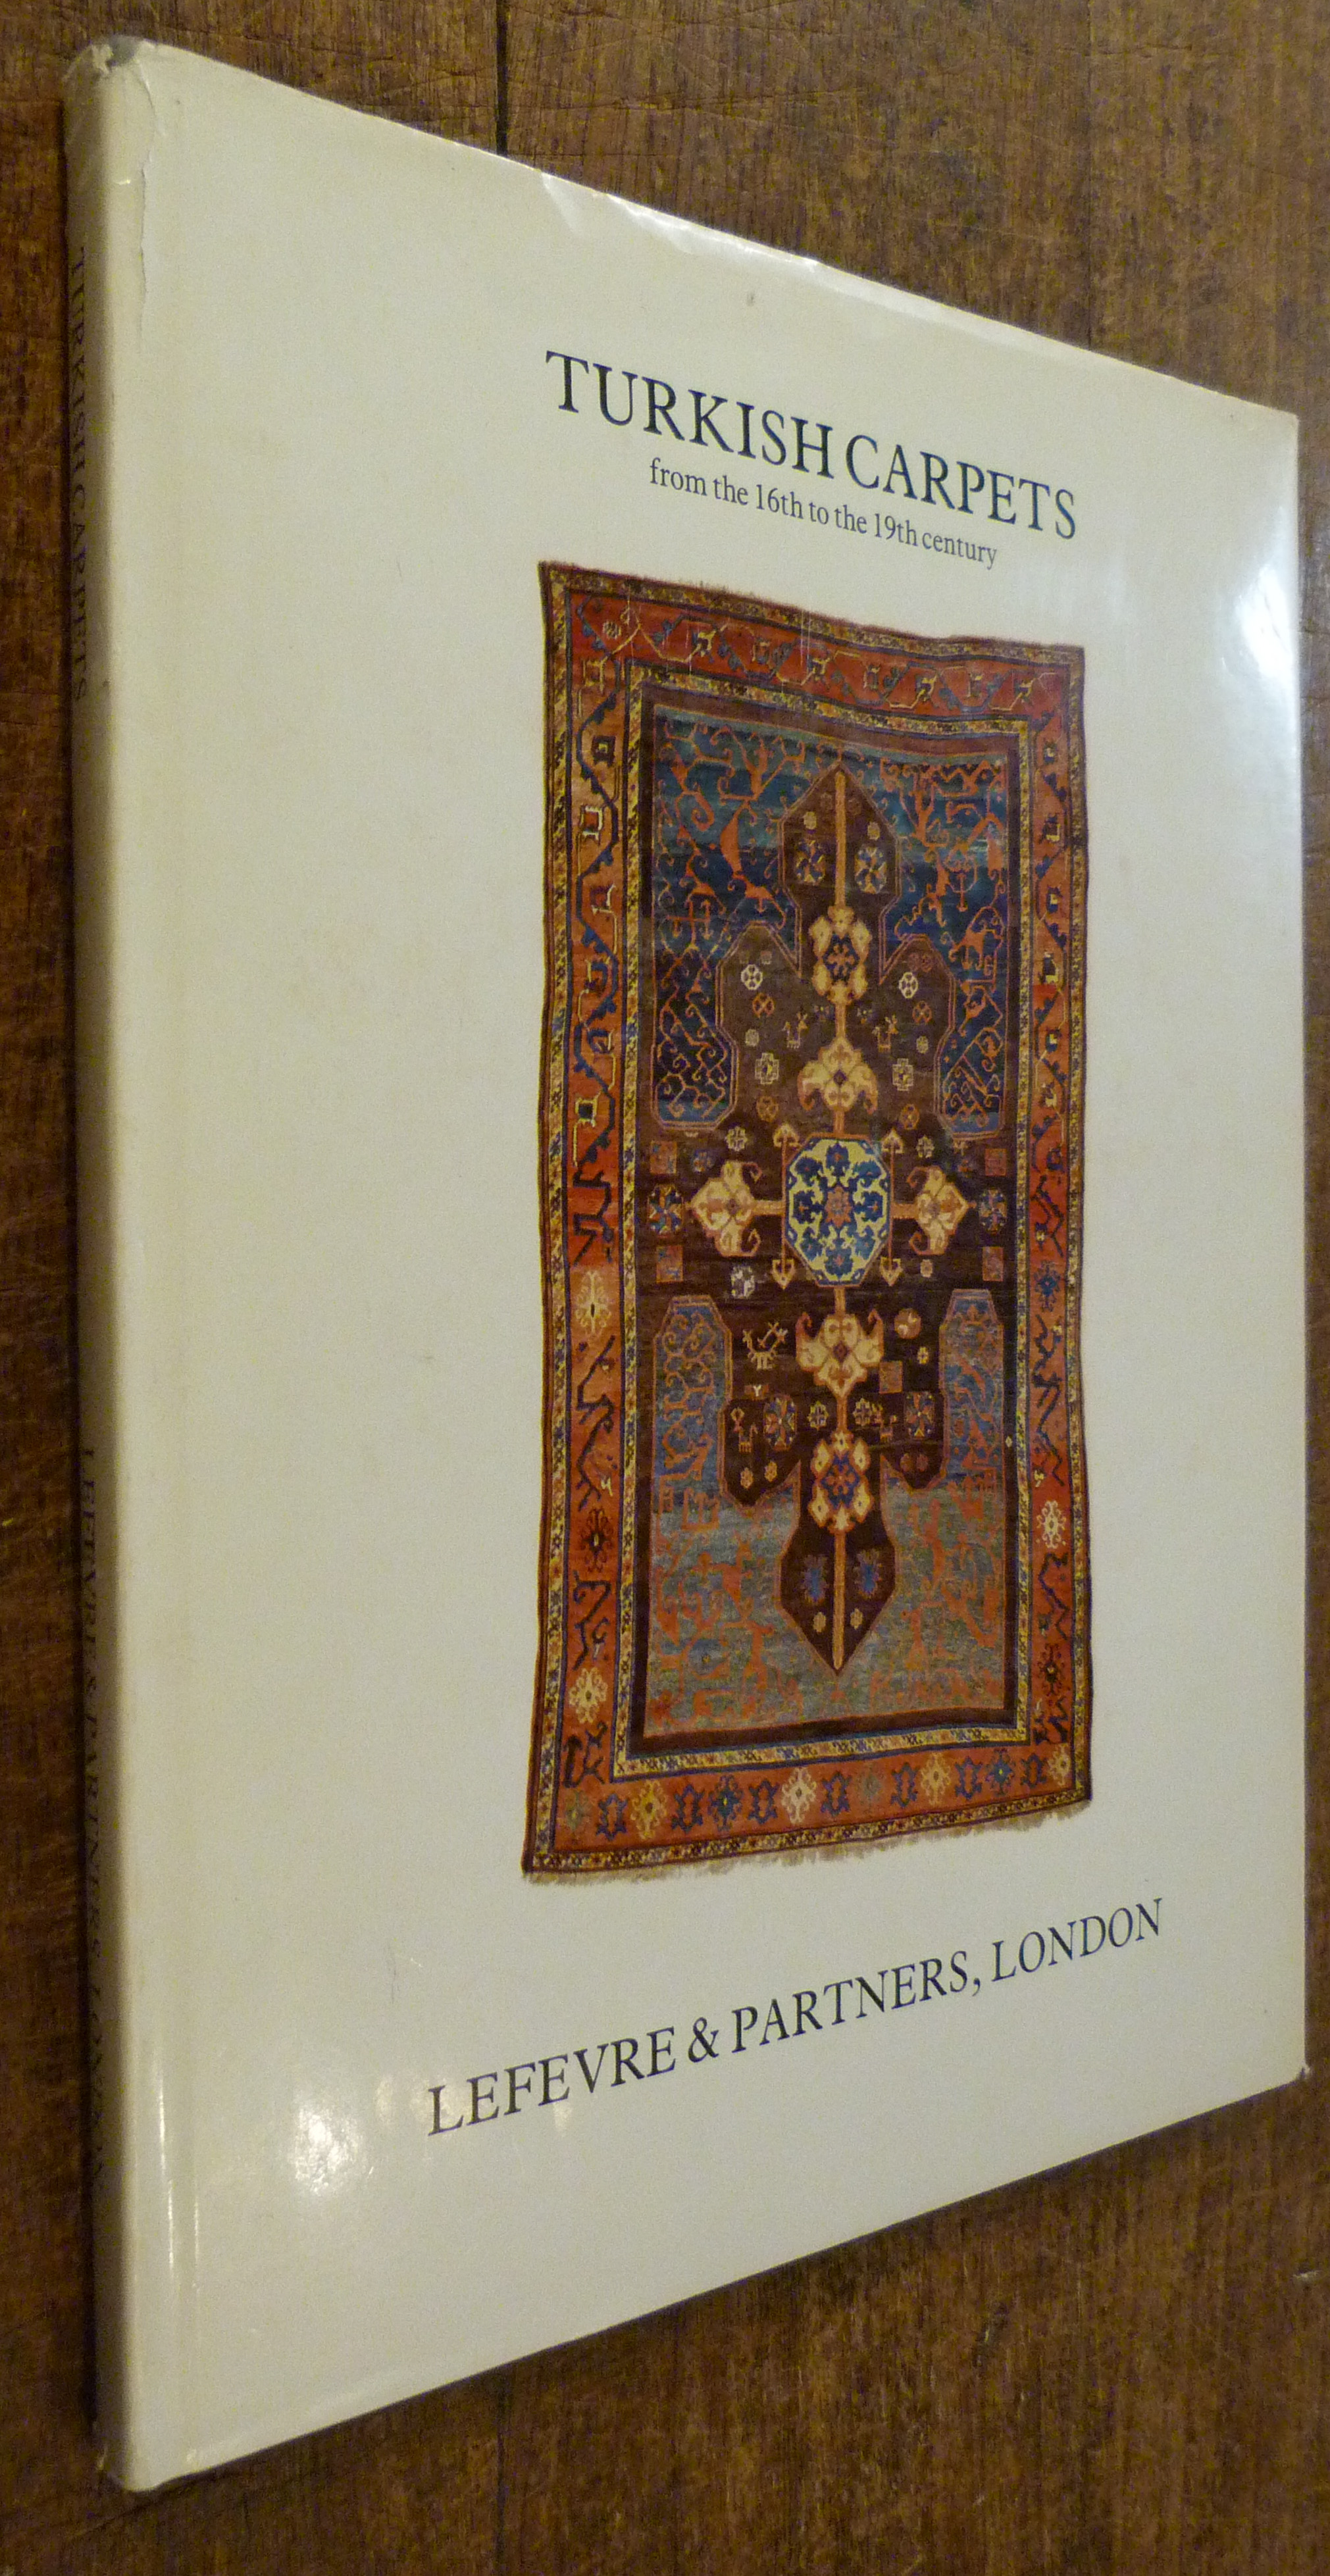 Image for Turkish Carpets from the 16th to the 19th Century.